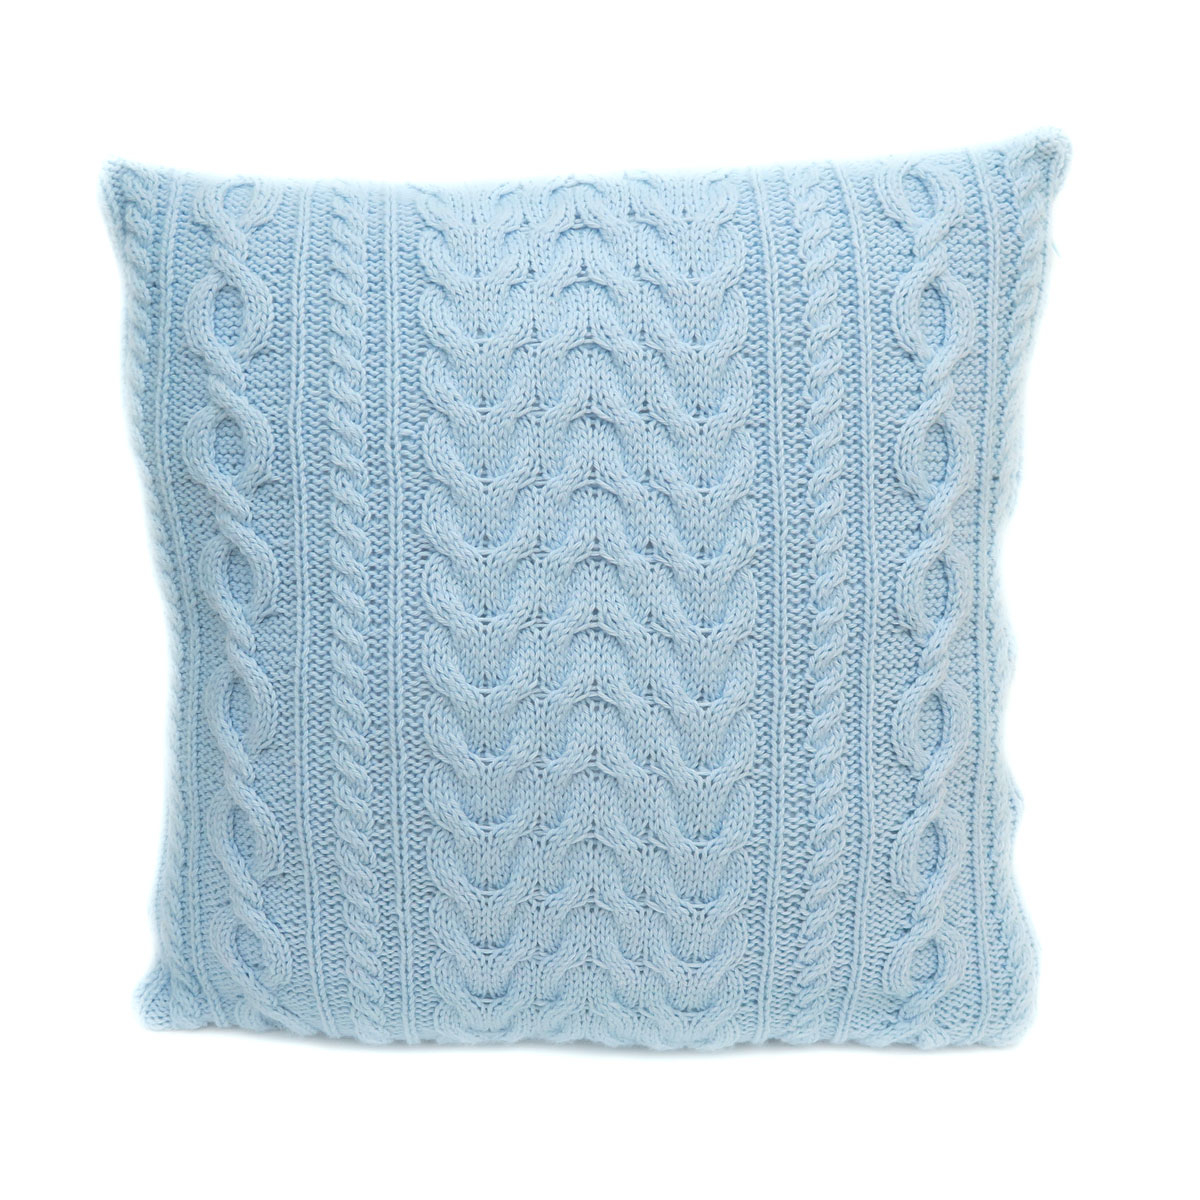 Free Cushion Cover Knitting Pattern Cozy Cable Cushion